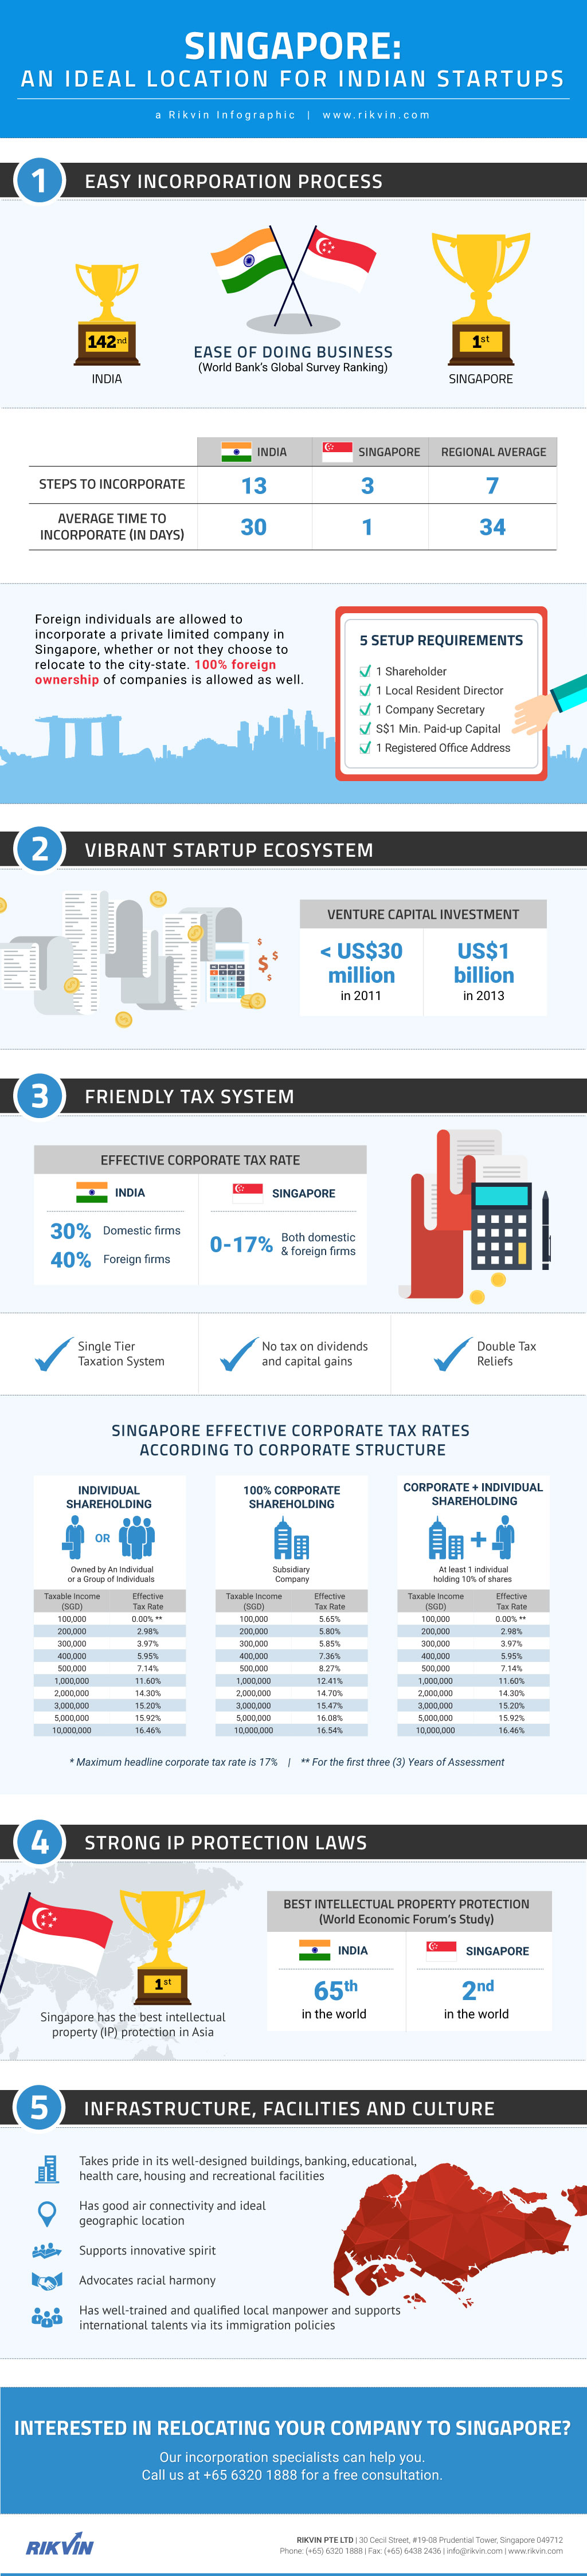 singapore-ideal-location-for-indian-startups-infographics An Ideal Location for Indian Startups